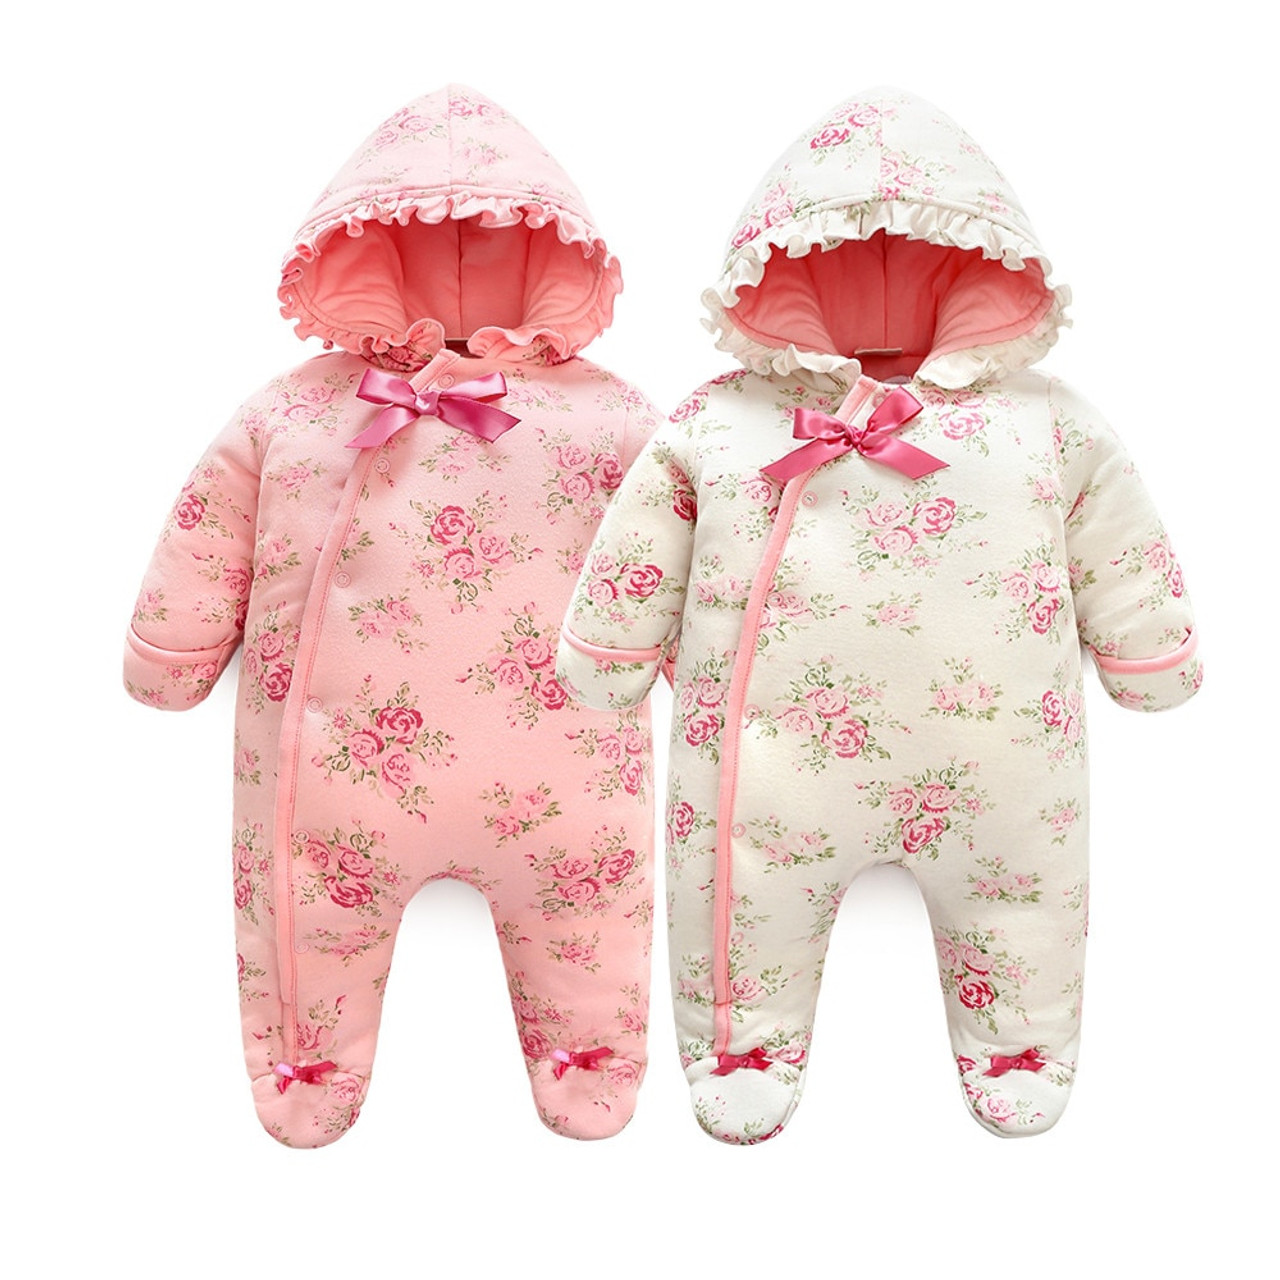 4b5c036ab123c Winter Newborn Baby Girl Rompers Thicken Warm Cotton Jumpsuit Hooded  Clothing Floral Princess Christmas Girls Onesie ...